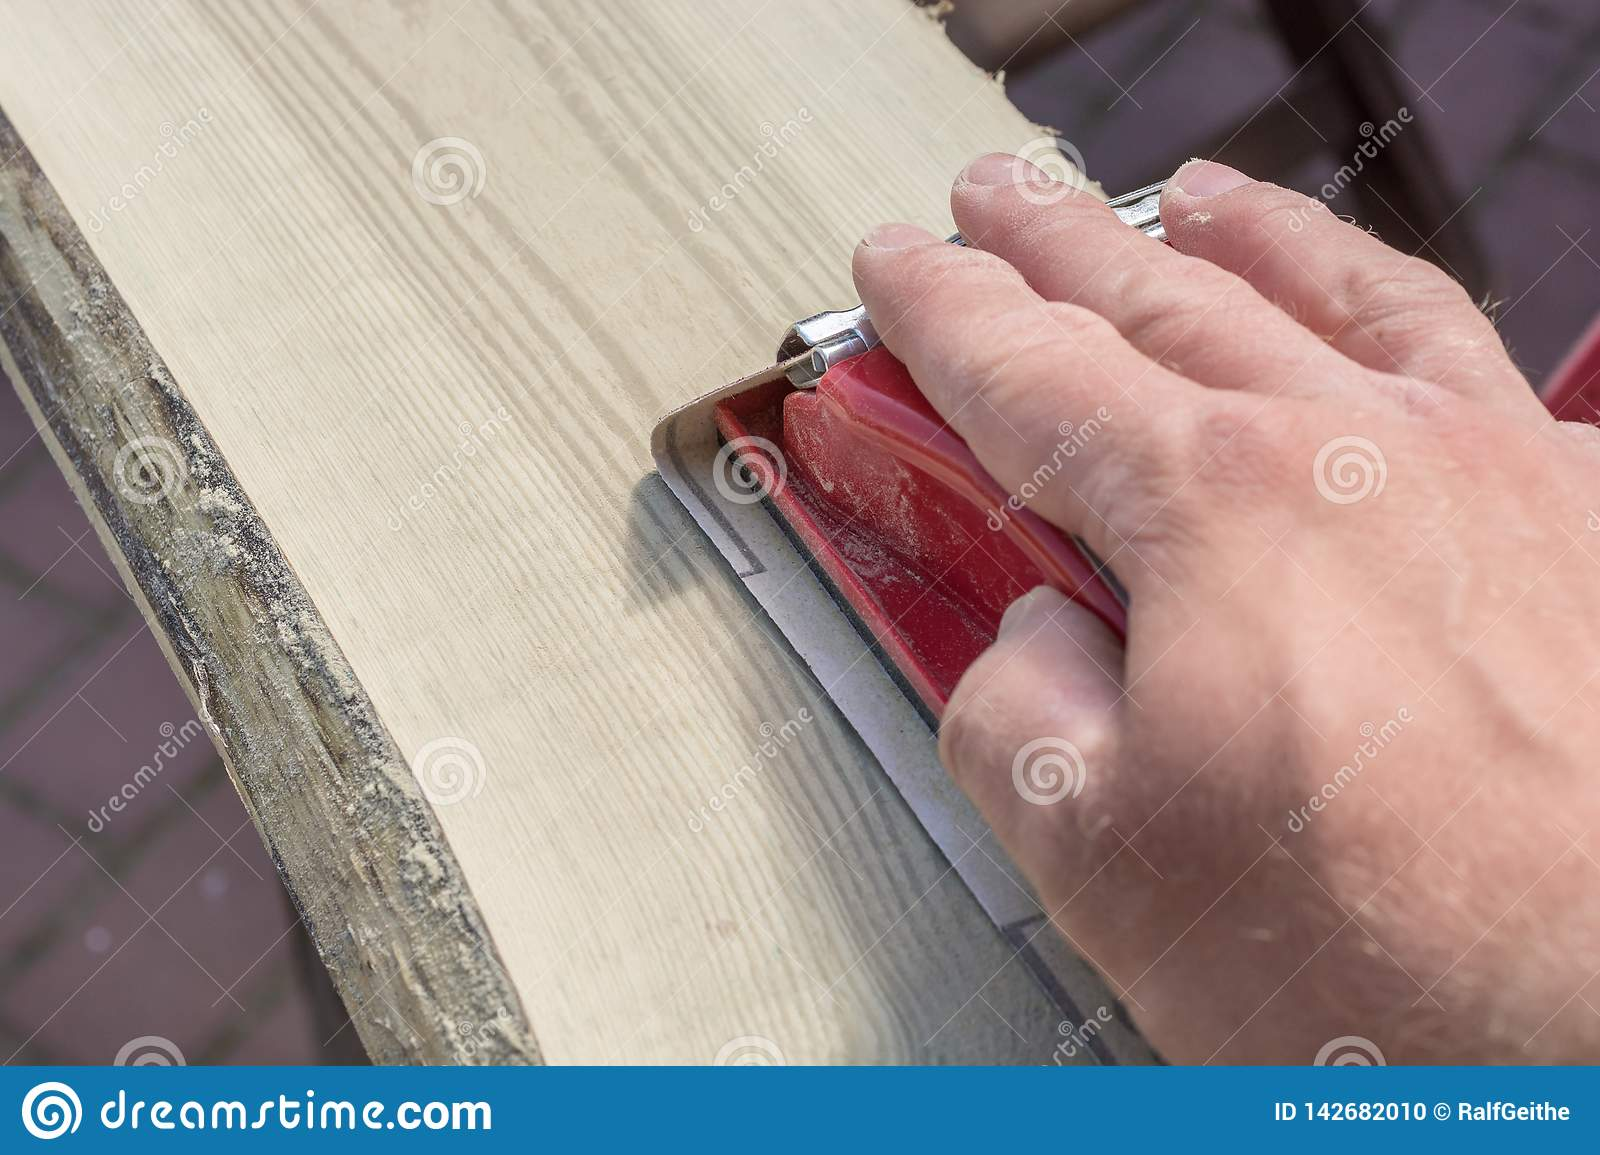 Preparation of an old wooden board by grinding with a hand sanding block